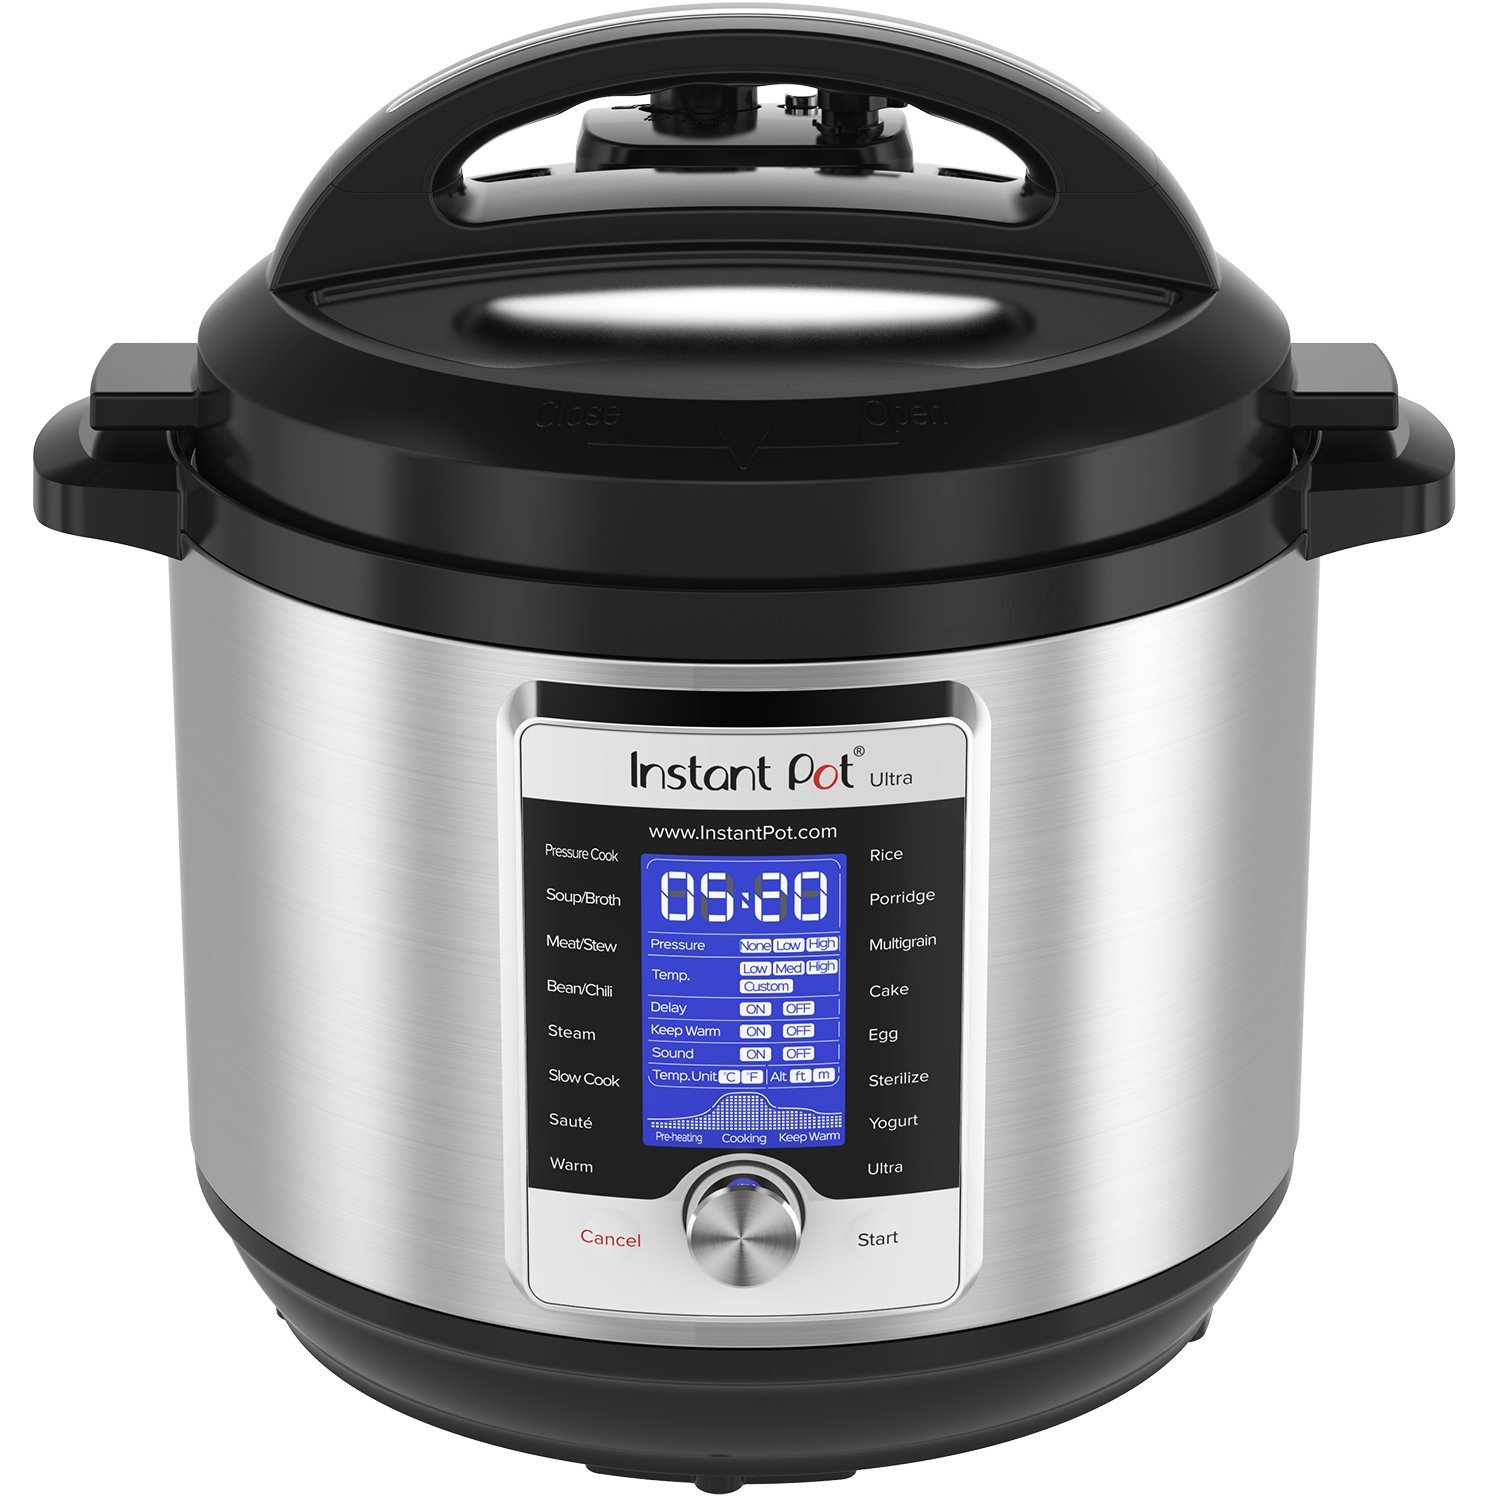 Instant Pot Ultra 8 Qt 10-in-1 Multi- Use - Replaces 10 common kitchen Appliances - pressure cooker, slow cooker, rice/porridge cooker, yogurt maker, cake maker, egg cooker, sauté/searing, steamer, warmer, and sterilizerDeveloped with the latest 3rd generation.